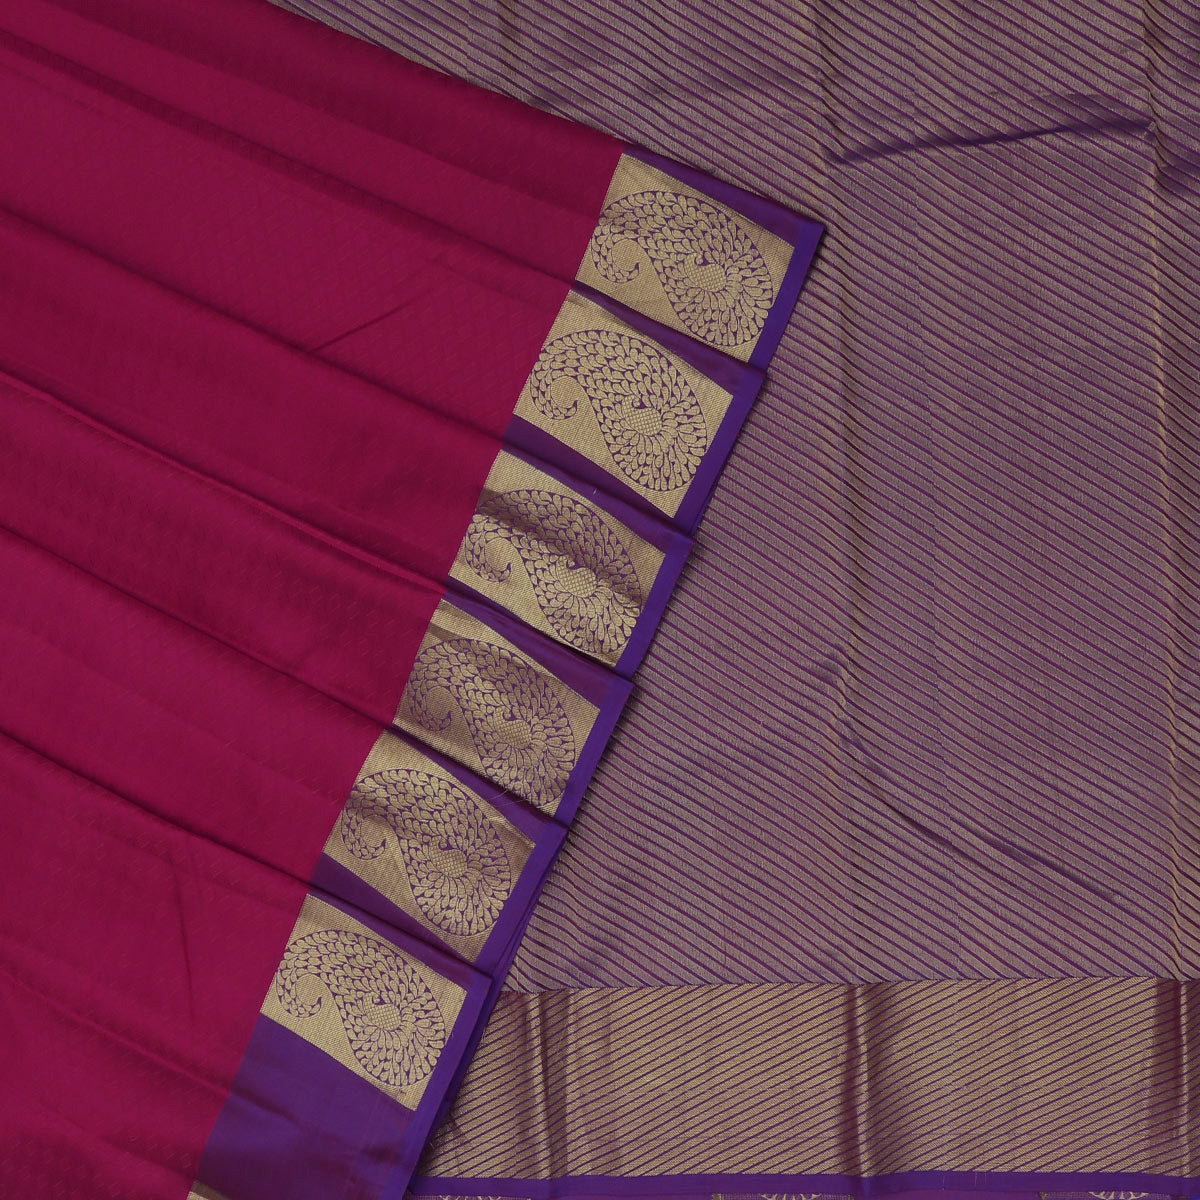 Kanjivaram Silk Saree Dark Pink with Light Orange Dual Shade and Violet with Mango Zari border